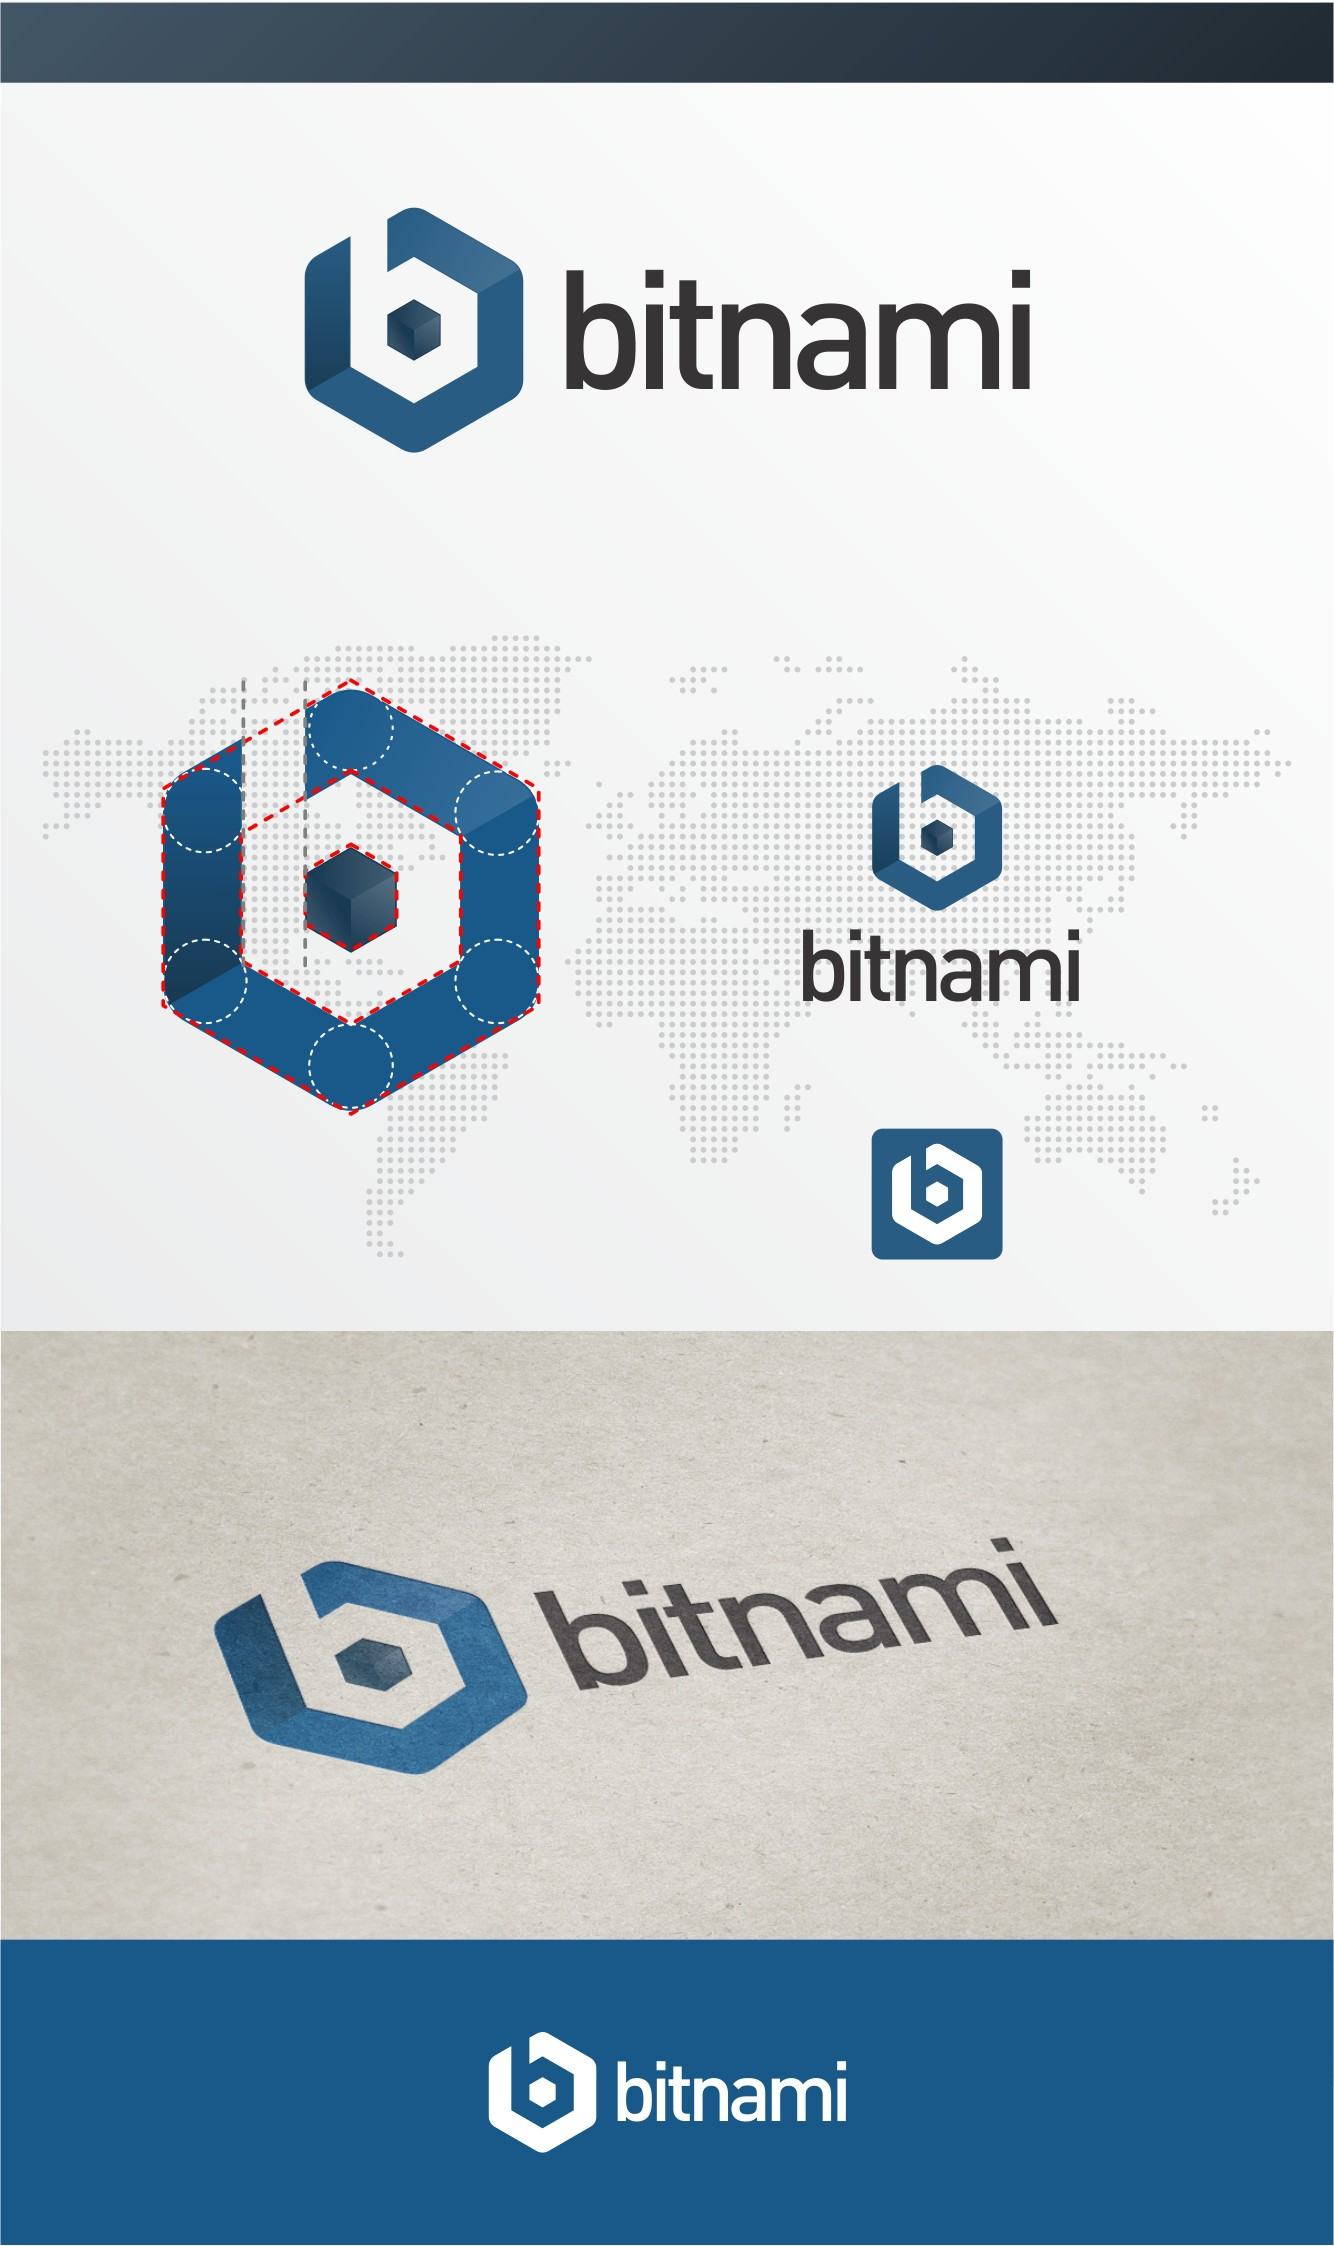 Create a logo for Bitnami and reach millions of developers and web designers